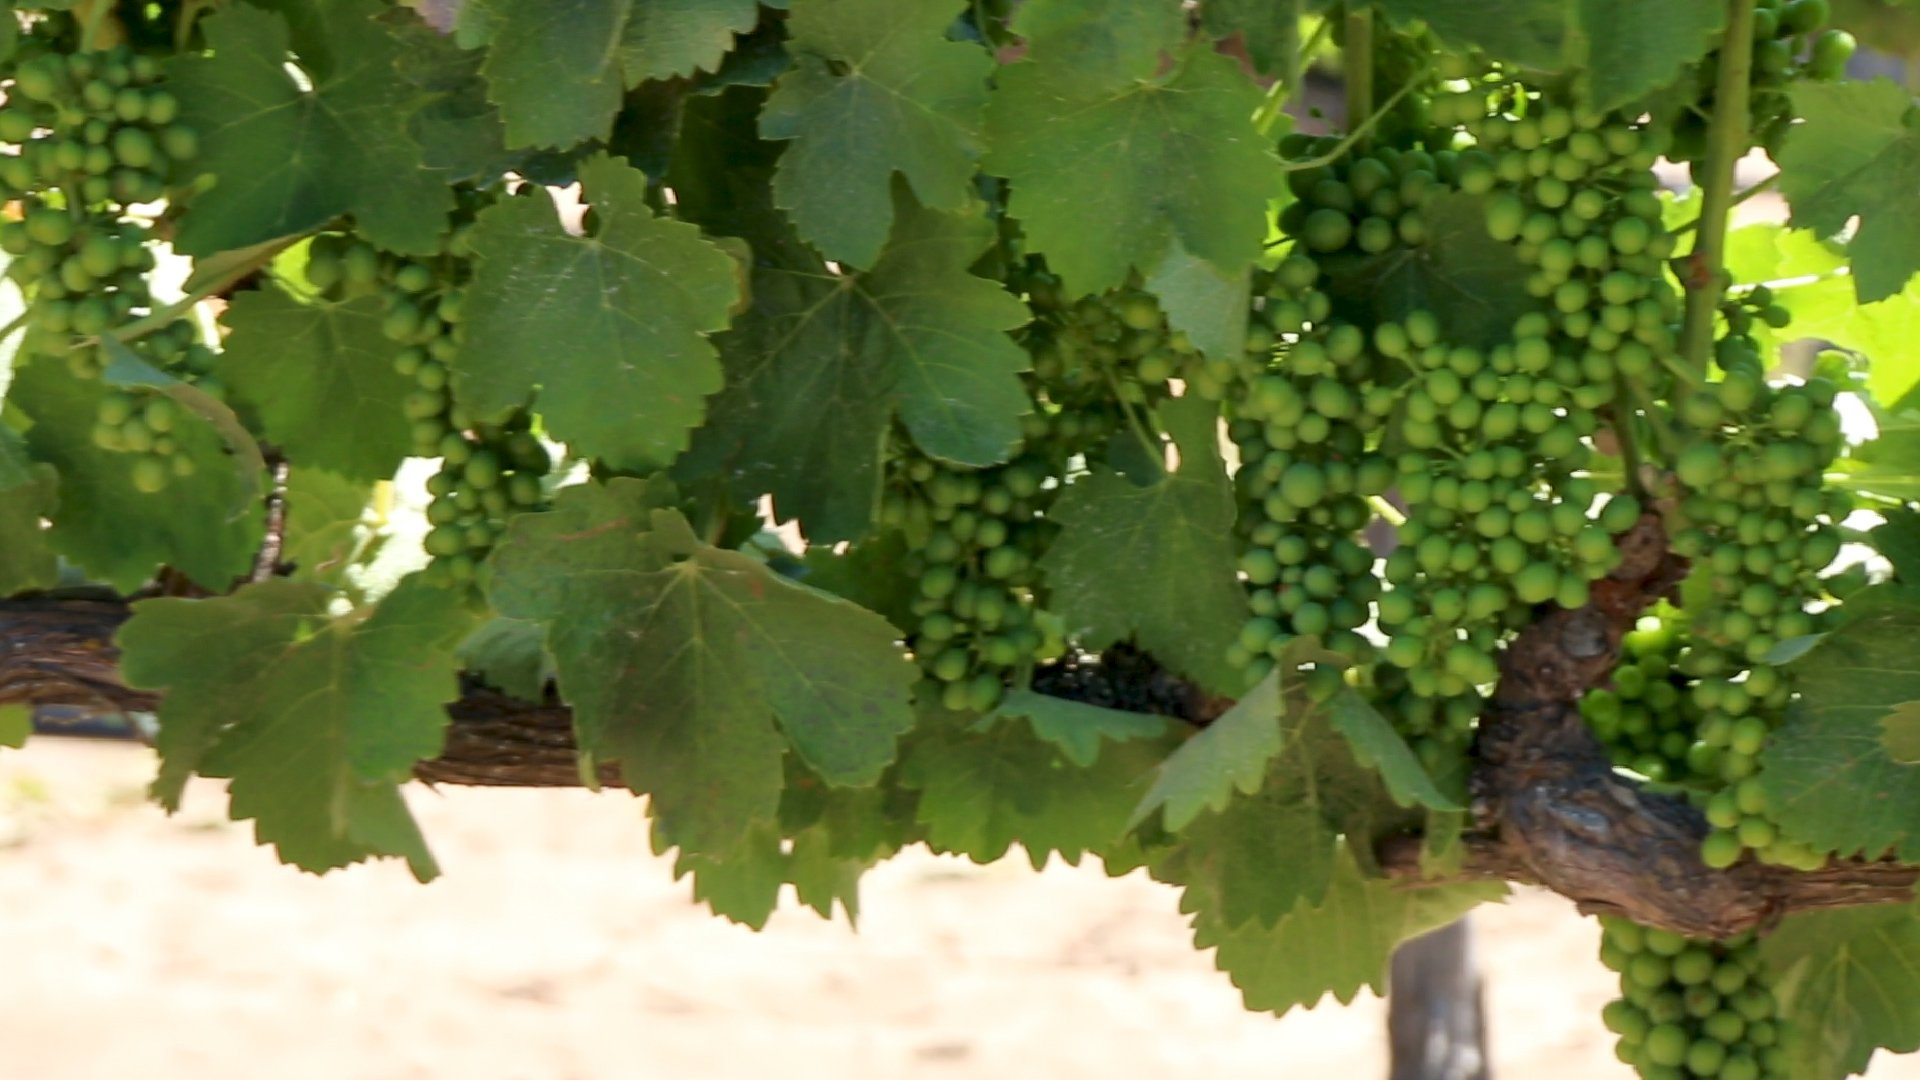 Syrah Grapes on vines, Larner Vineyard, Ballard canyon